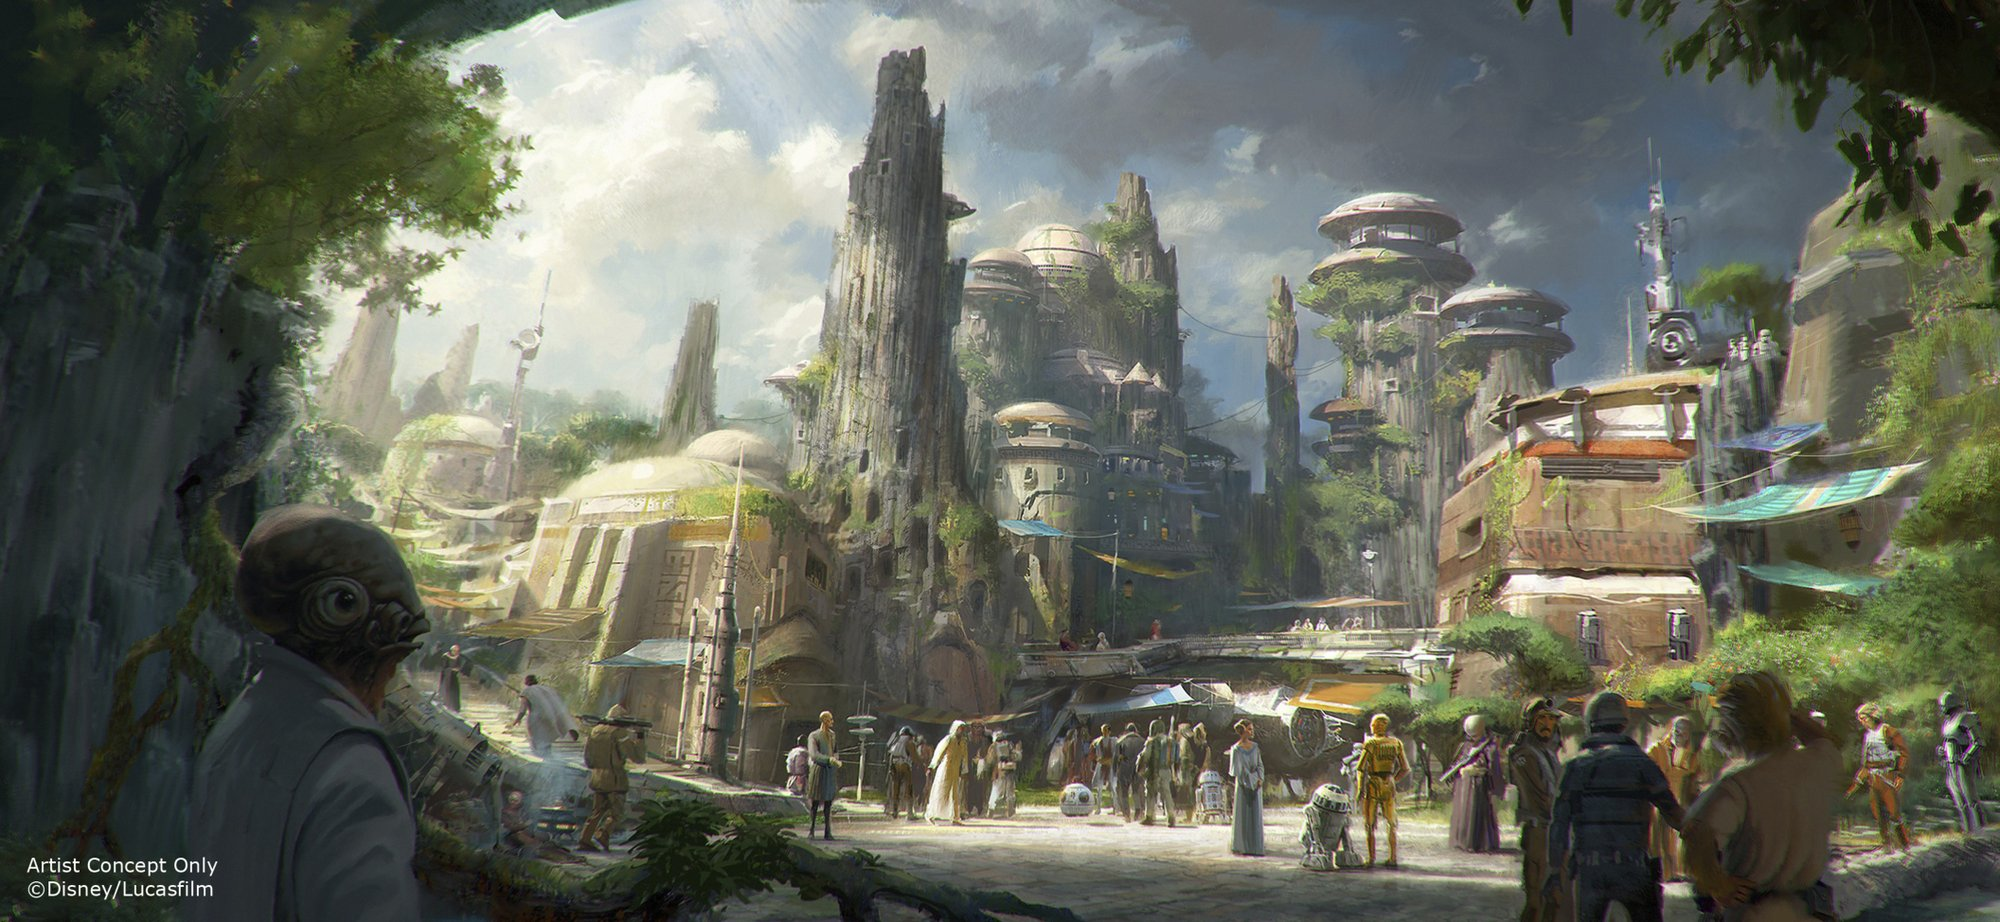 'Move along': Stormtroopers ready for Star Wars land crowds